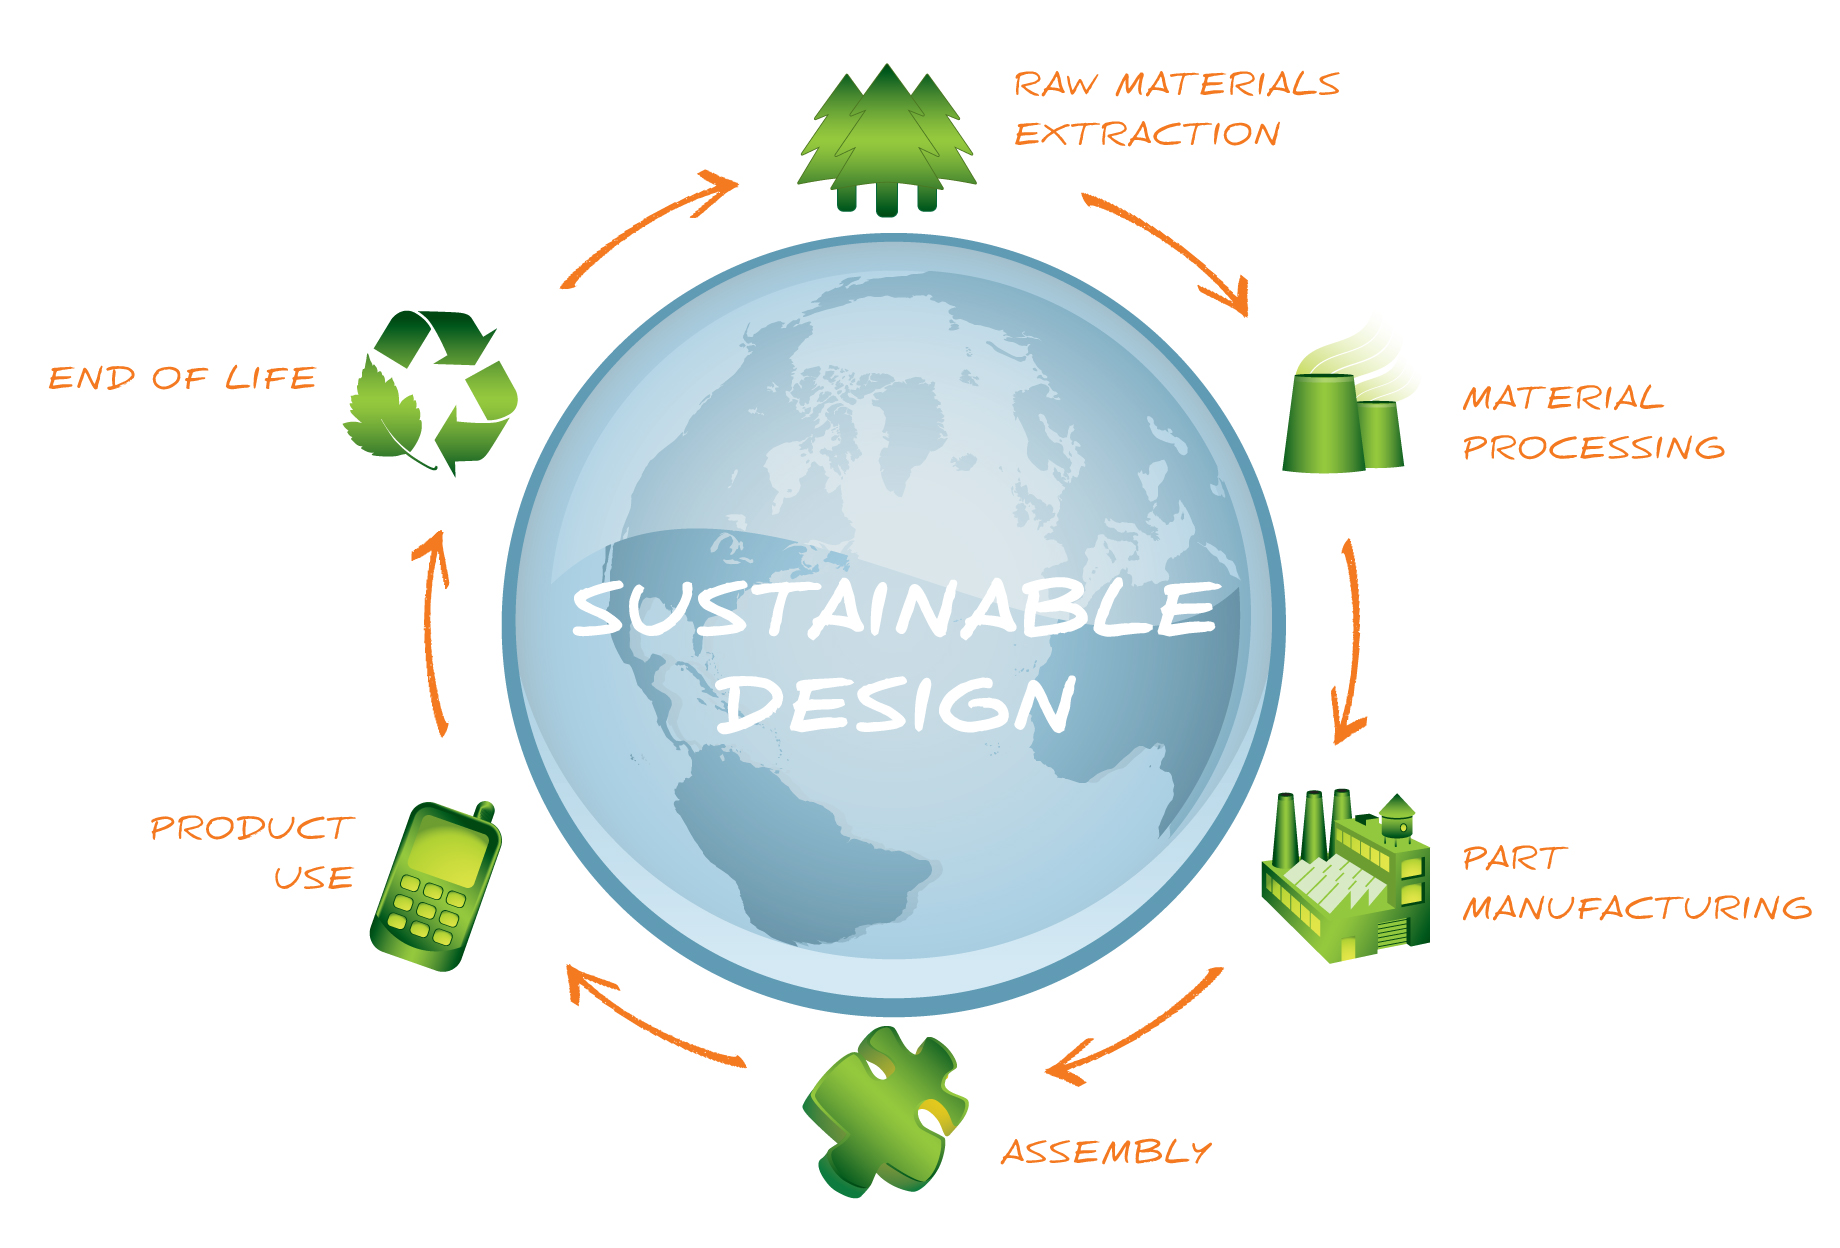 The Sustainable Design Cycle